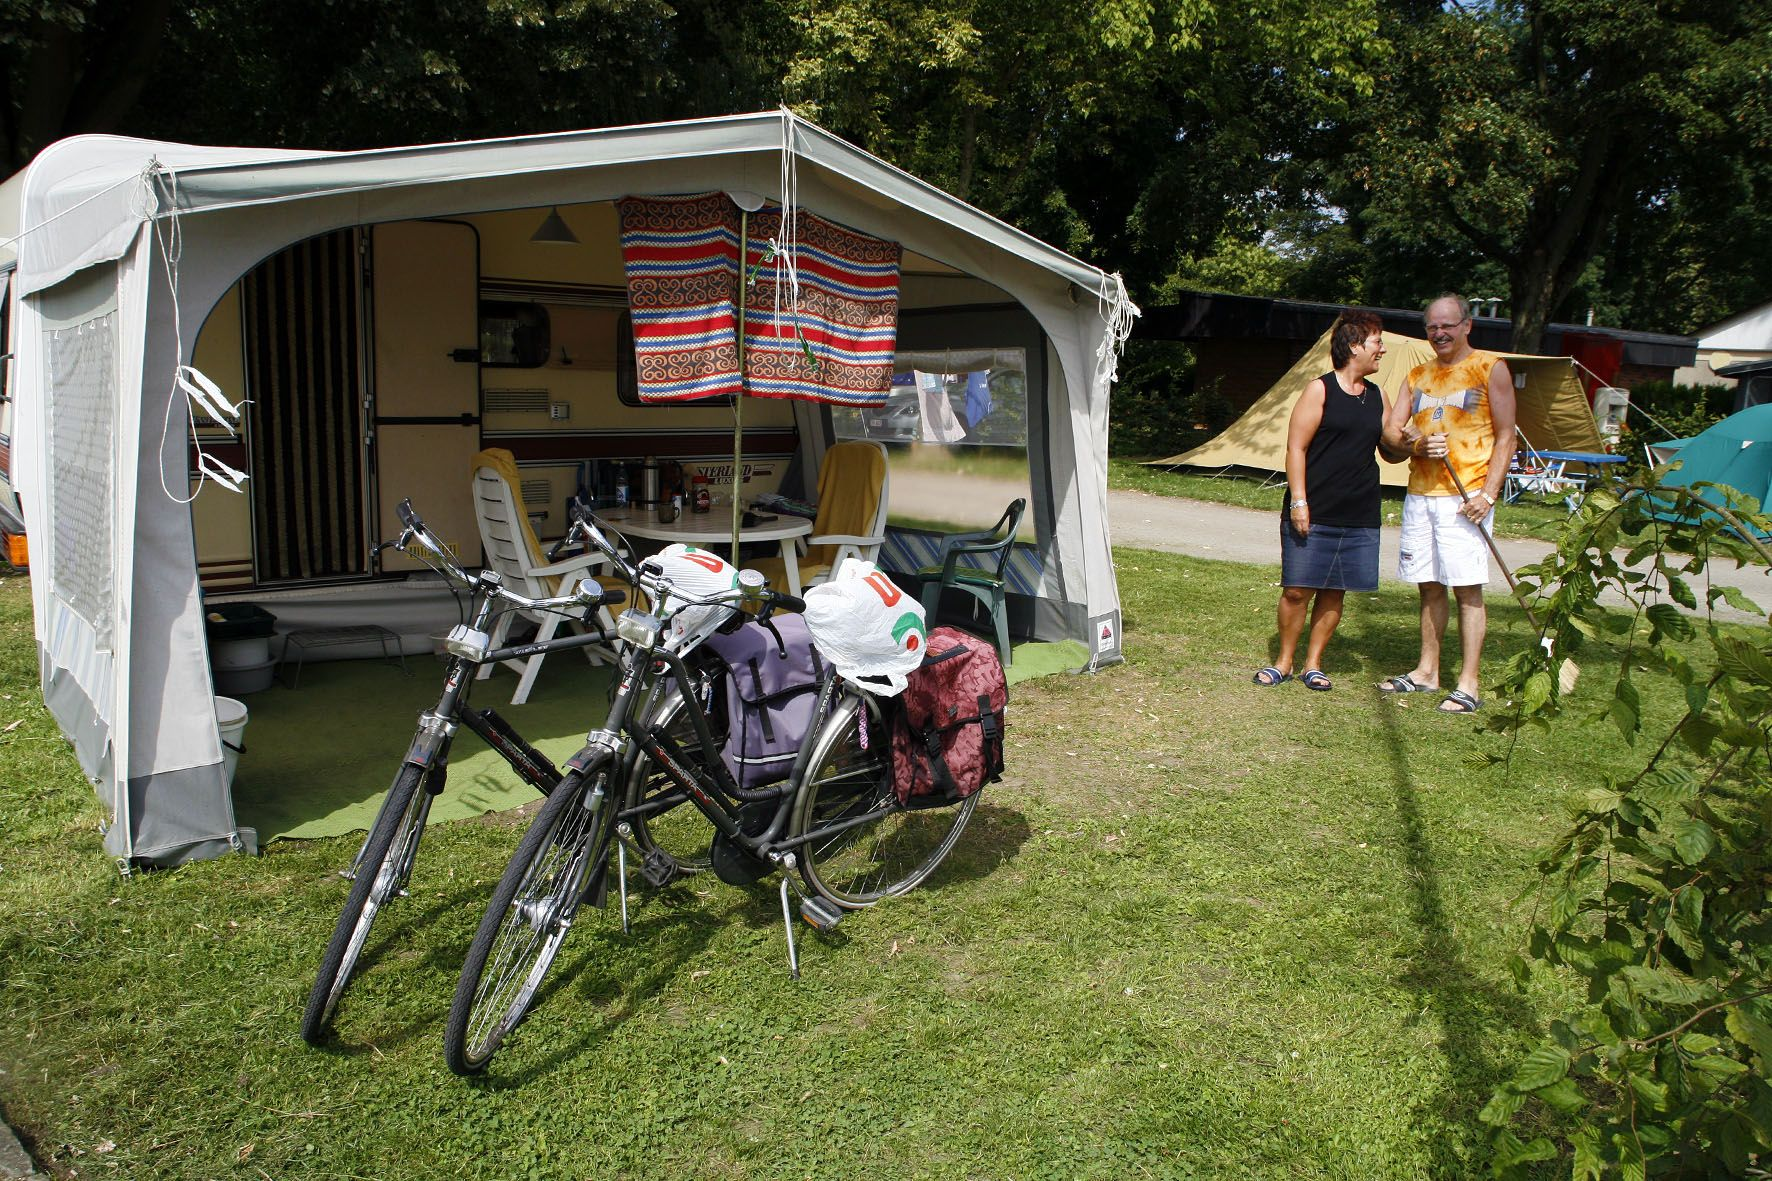 Camping municipal thionville for Piscine thionville